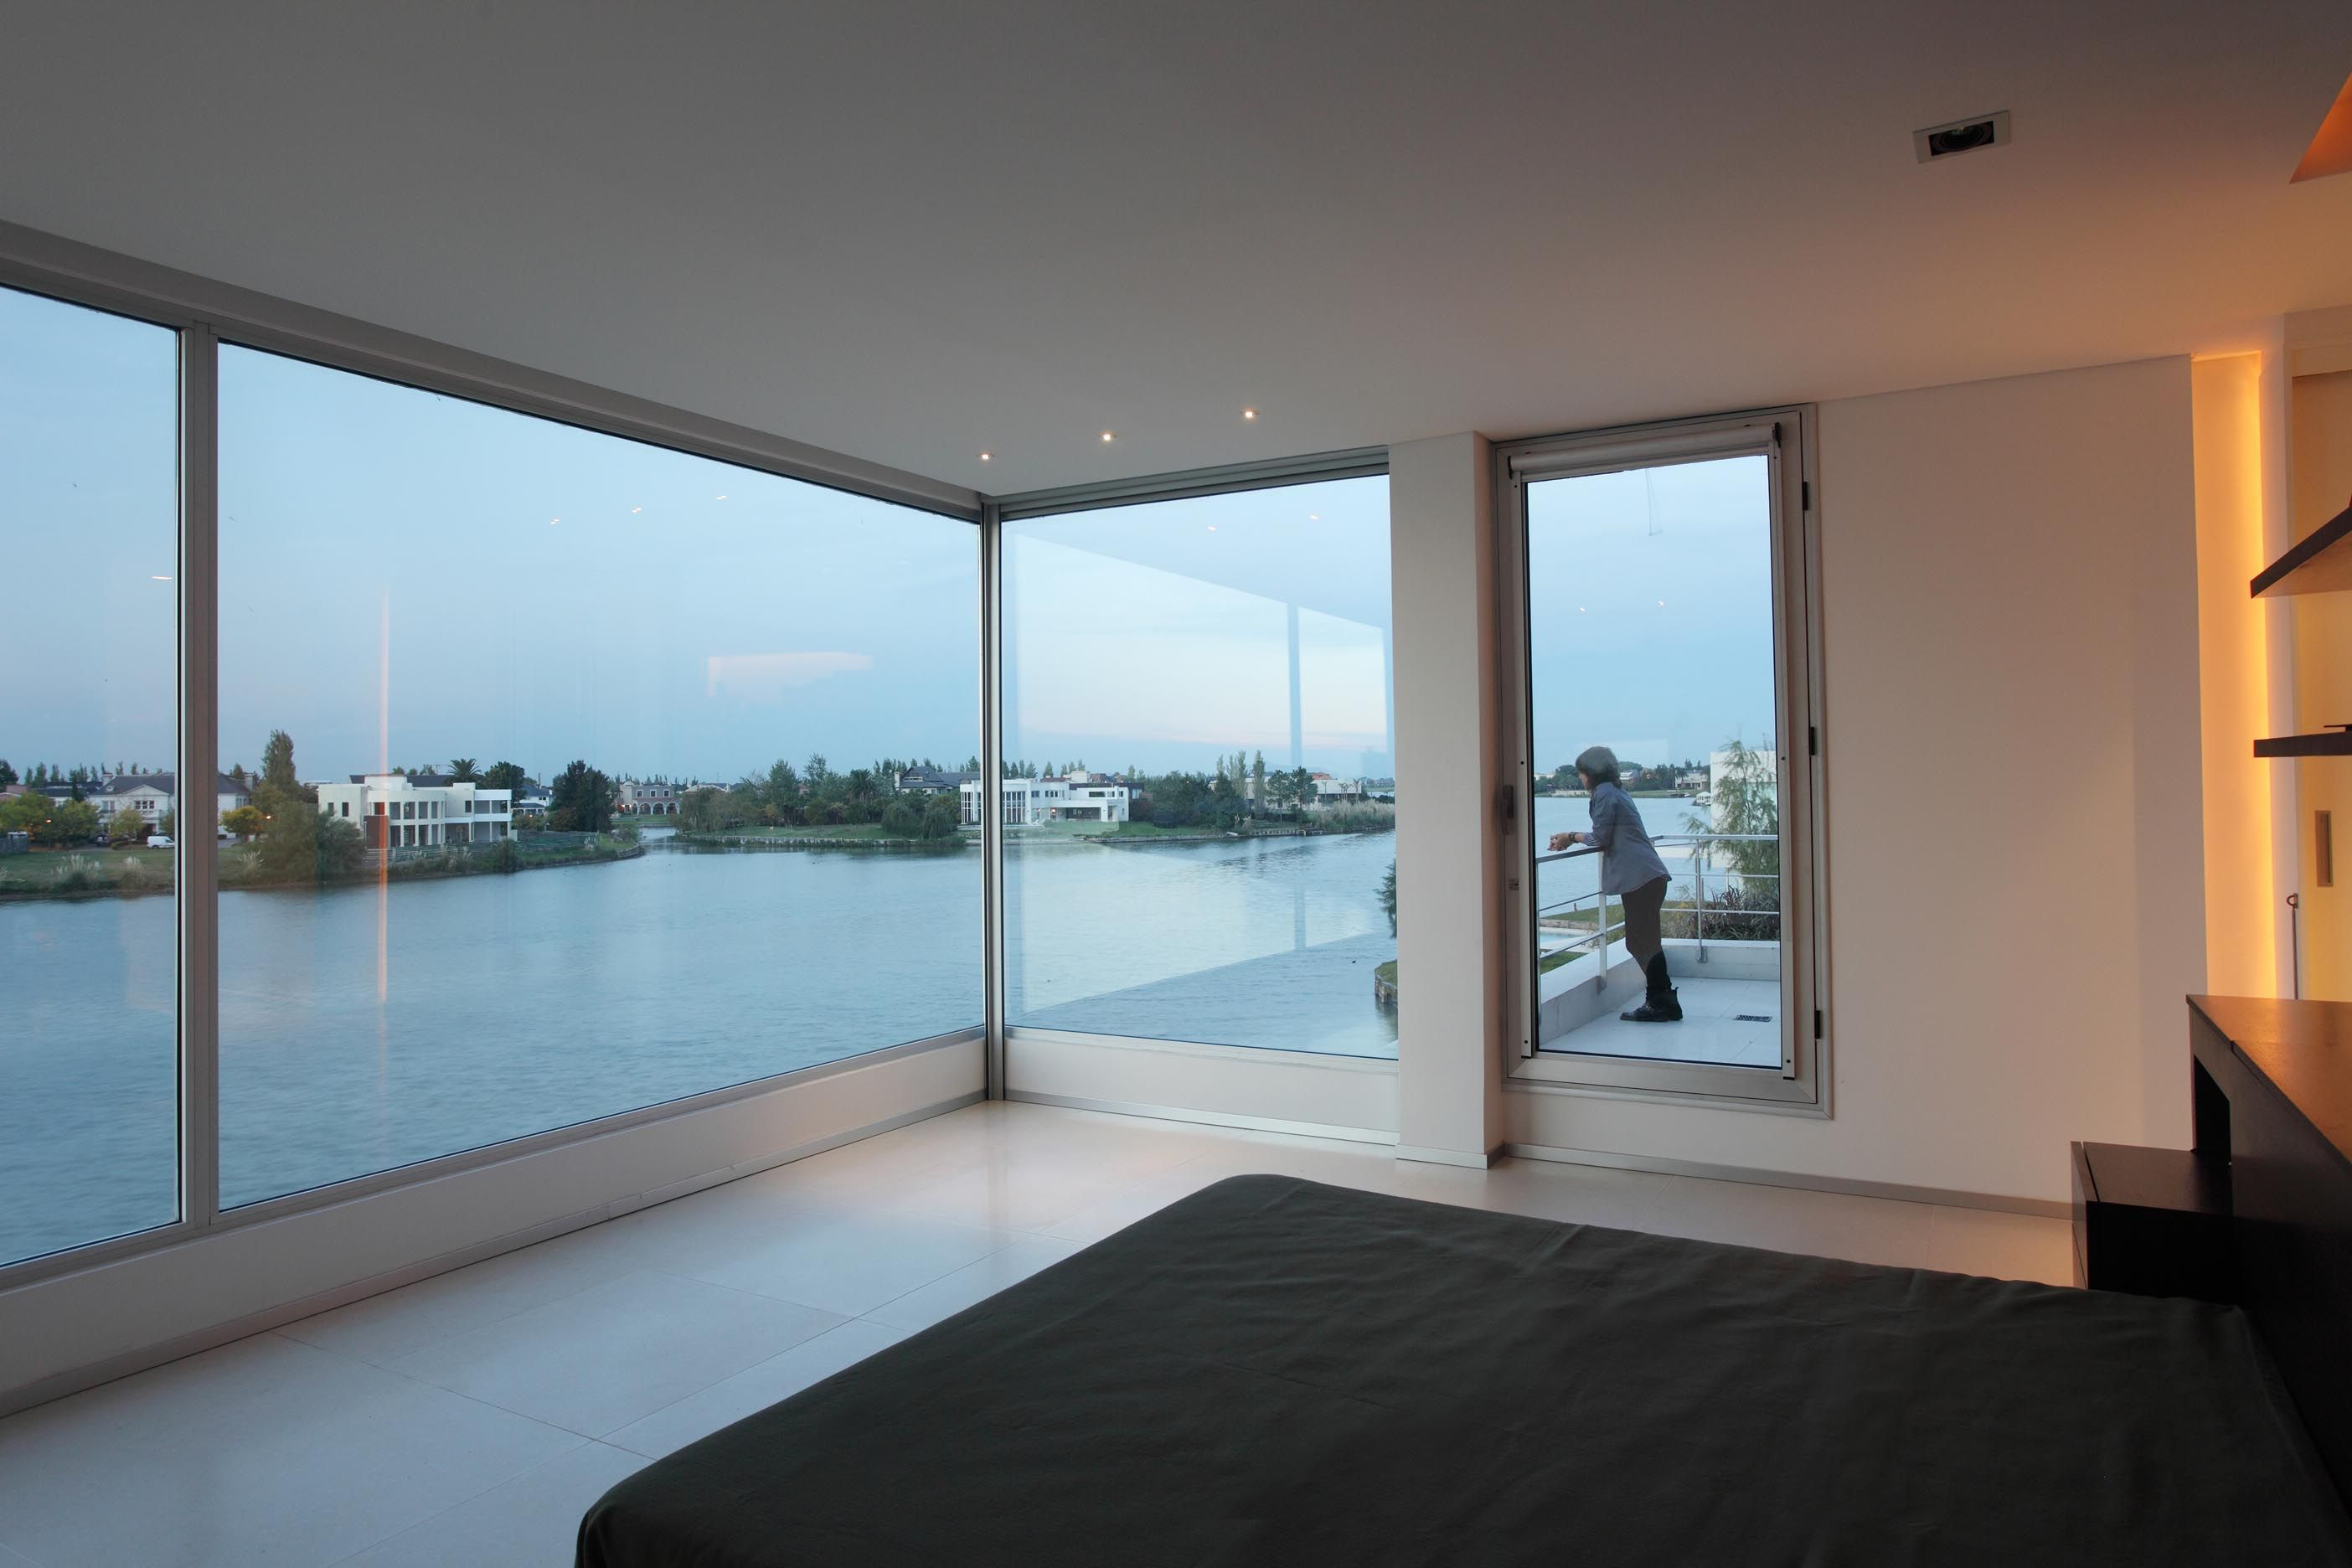 Mesmerizing open glass windows from beach house interior for Minimalist beach house